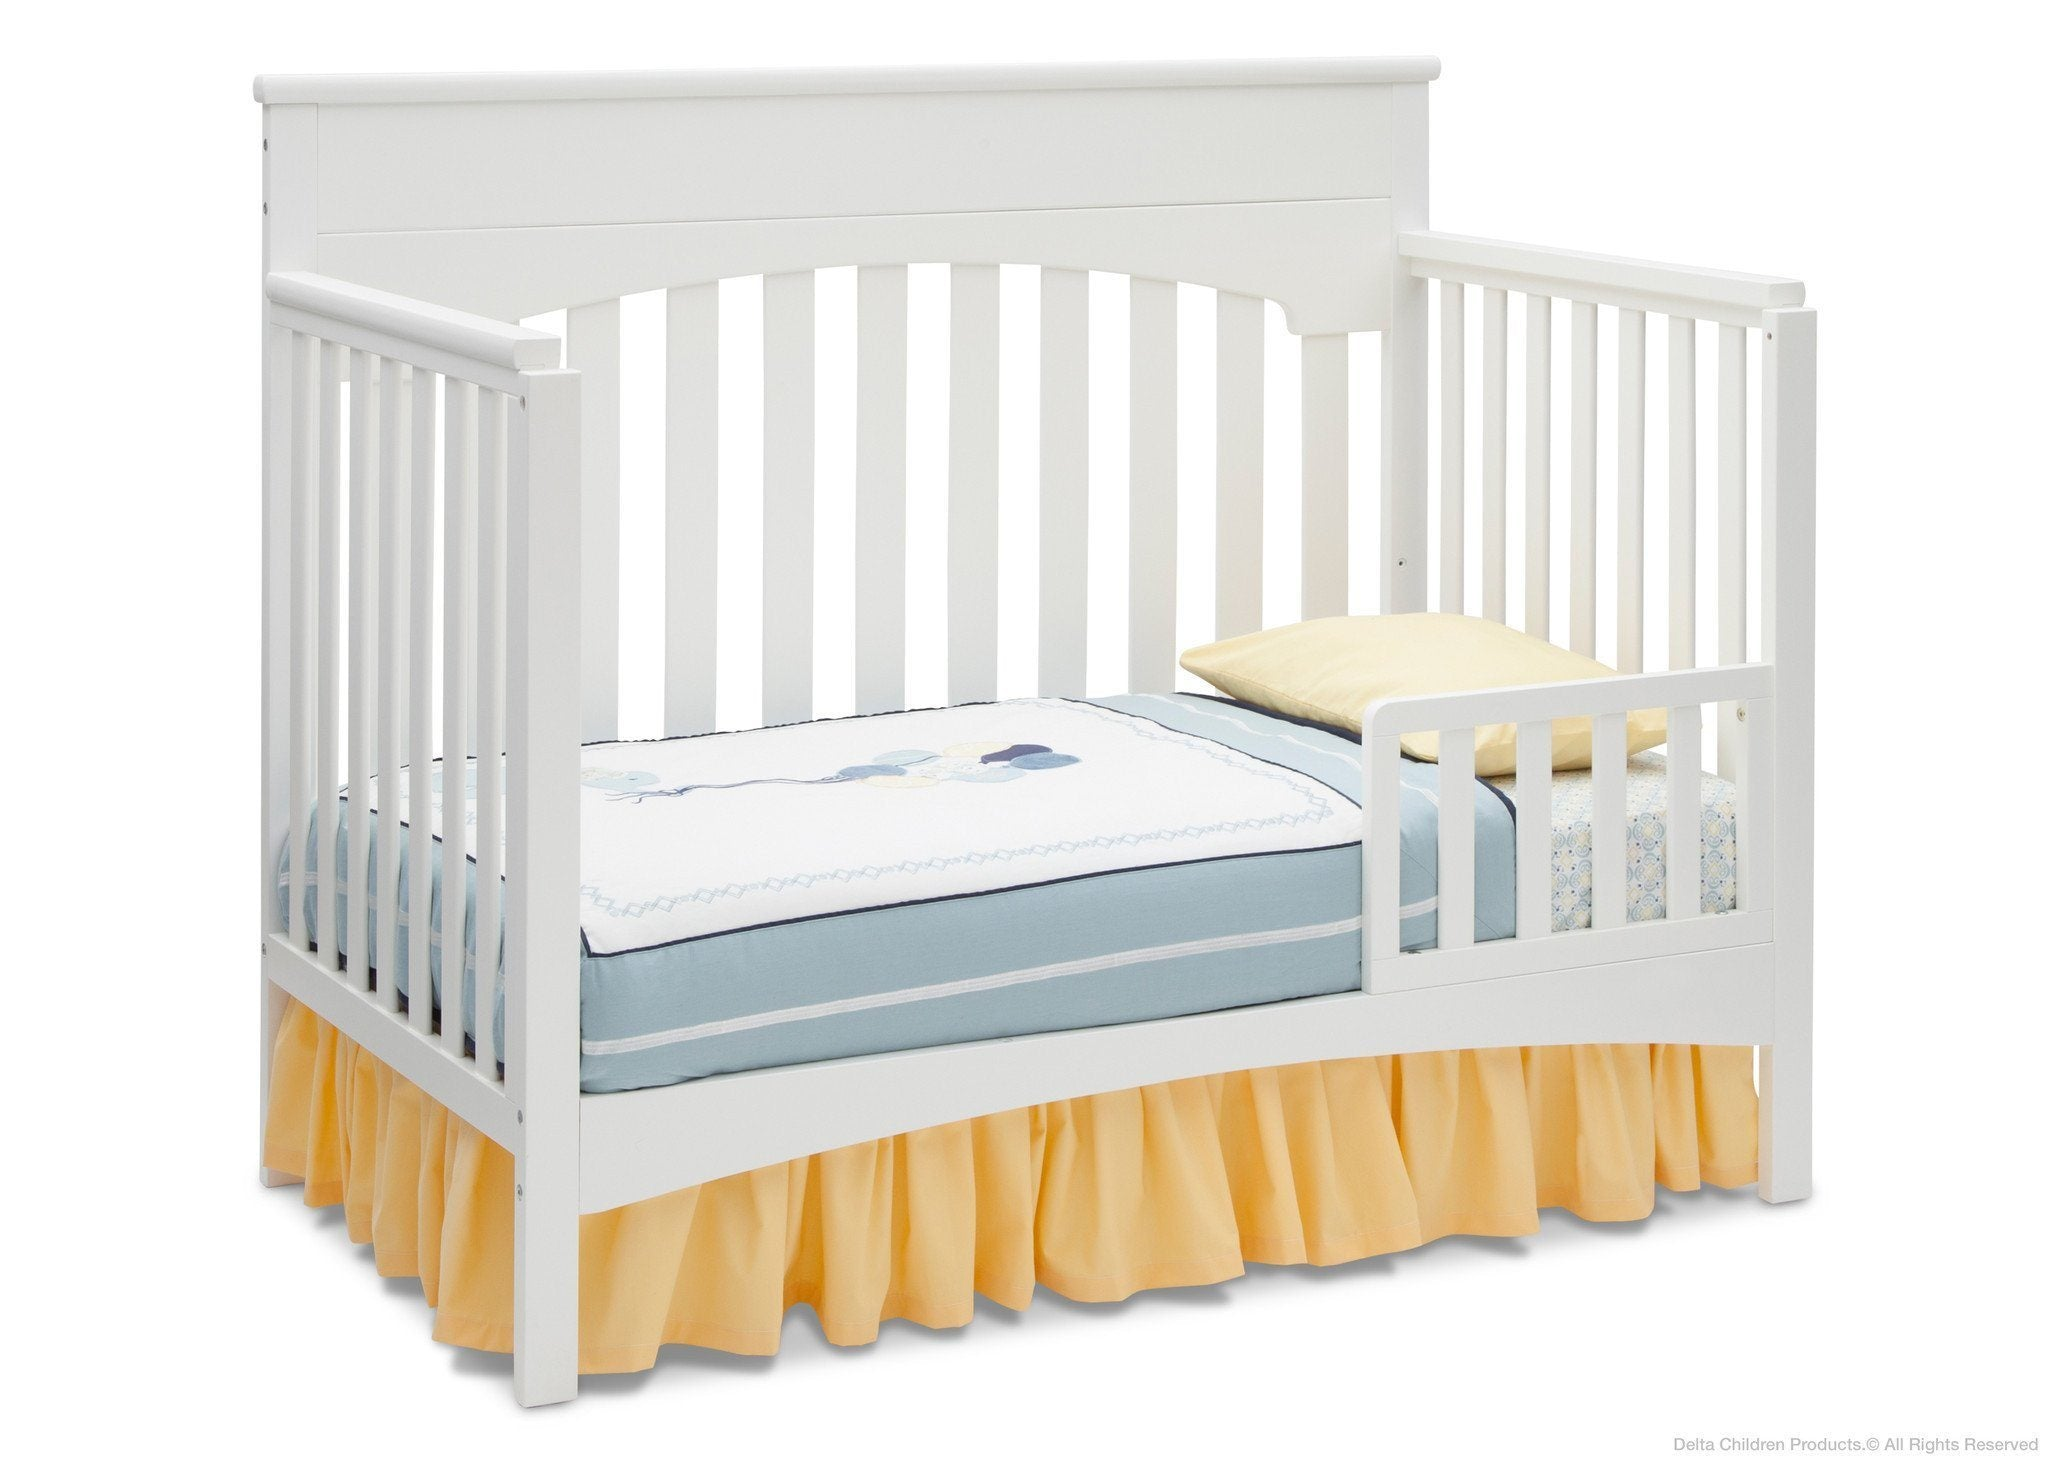 Delta Children White Ambiance (108) Bennington Lifestyle 4-in-1 Crib, Toddler Bed Conversion a4a